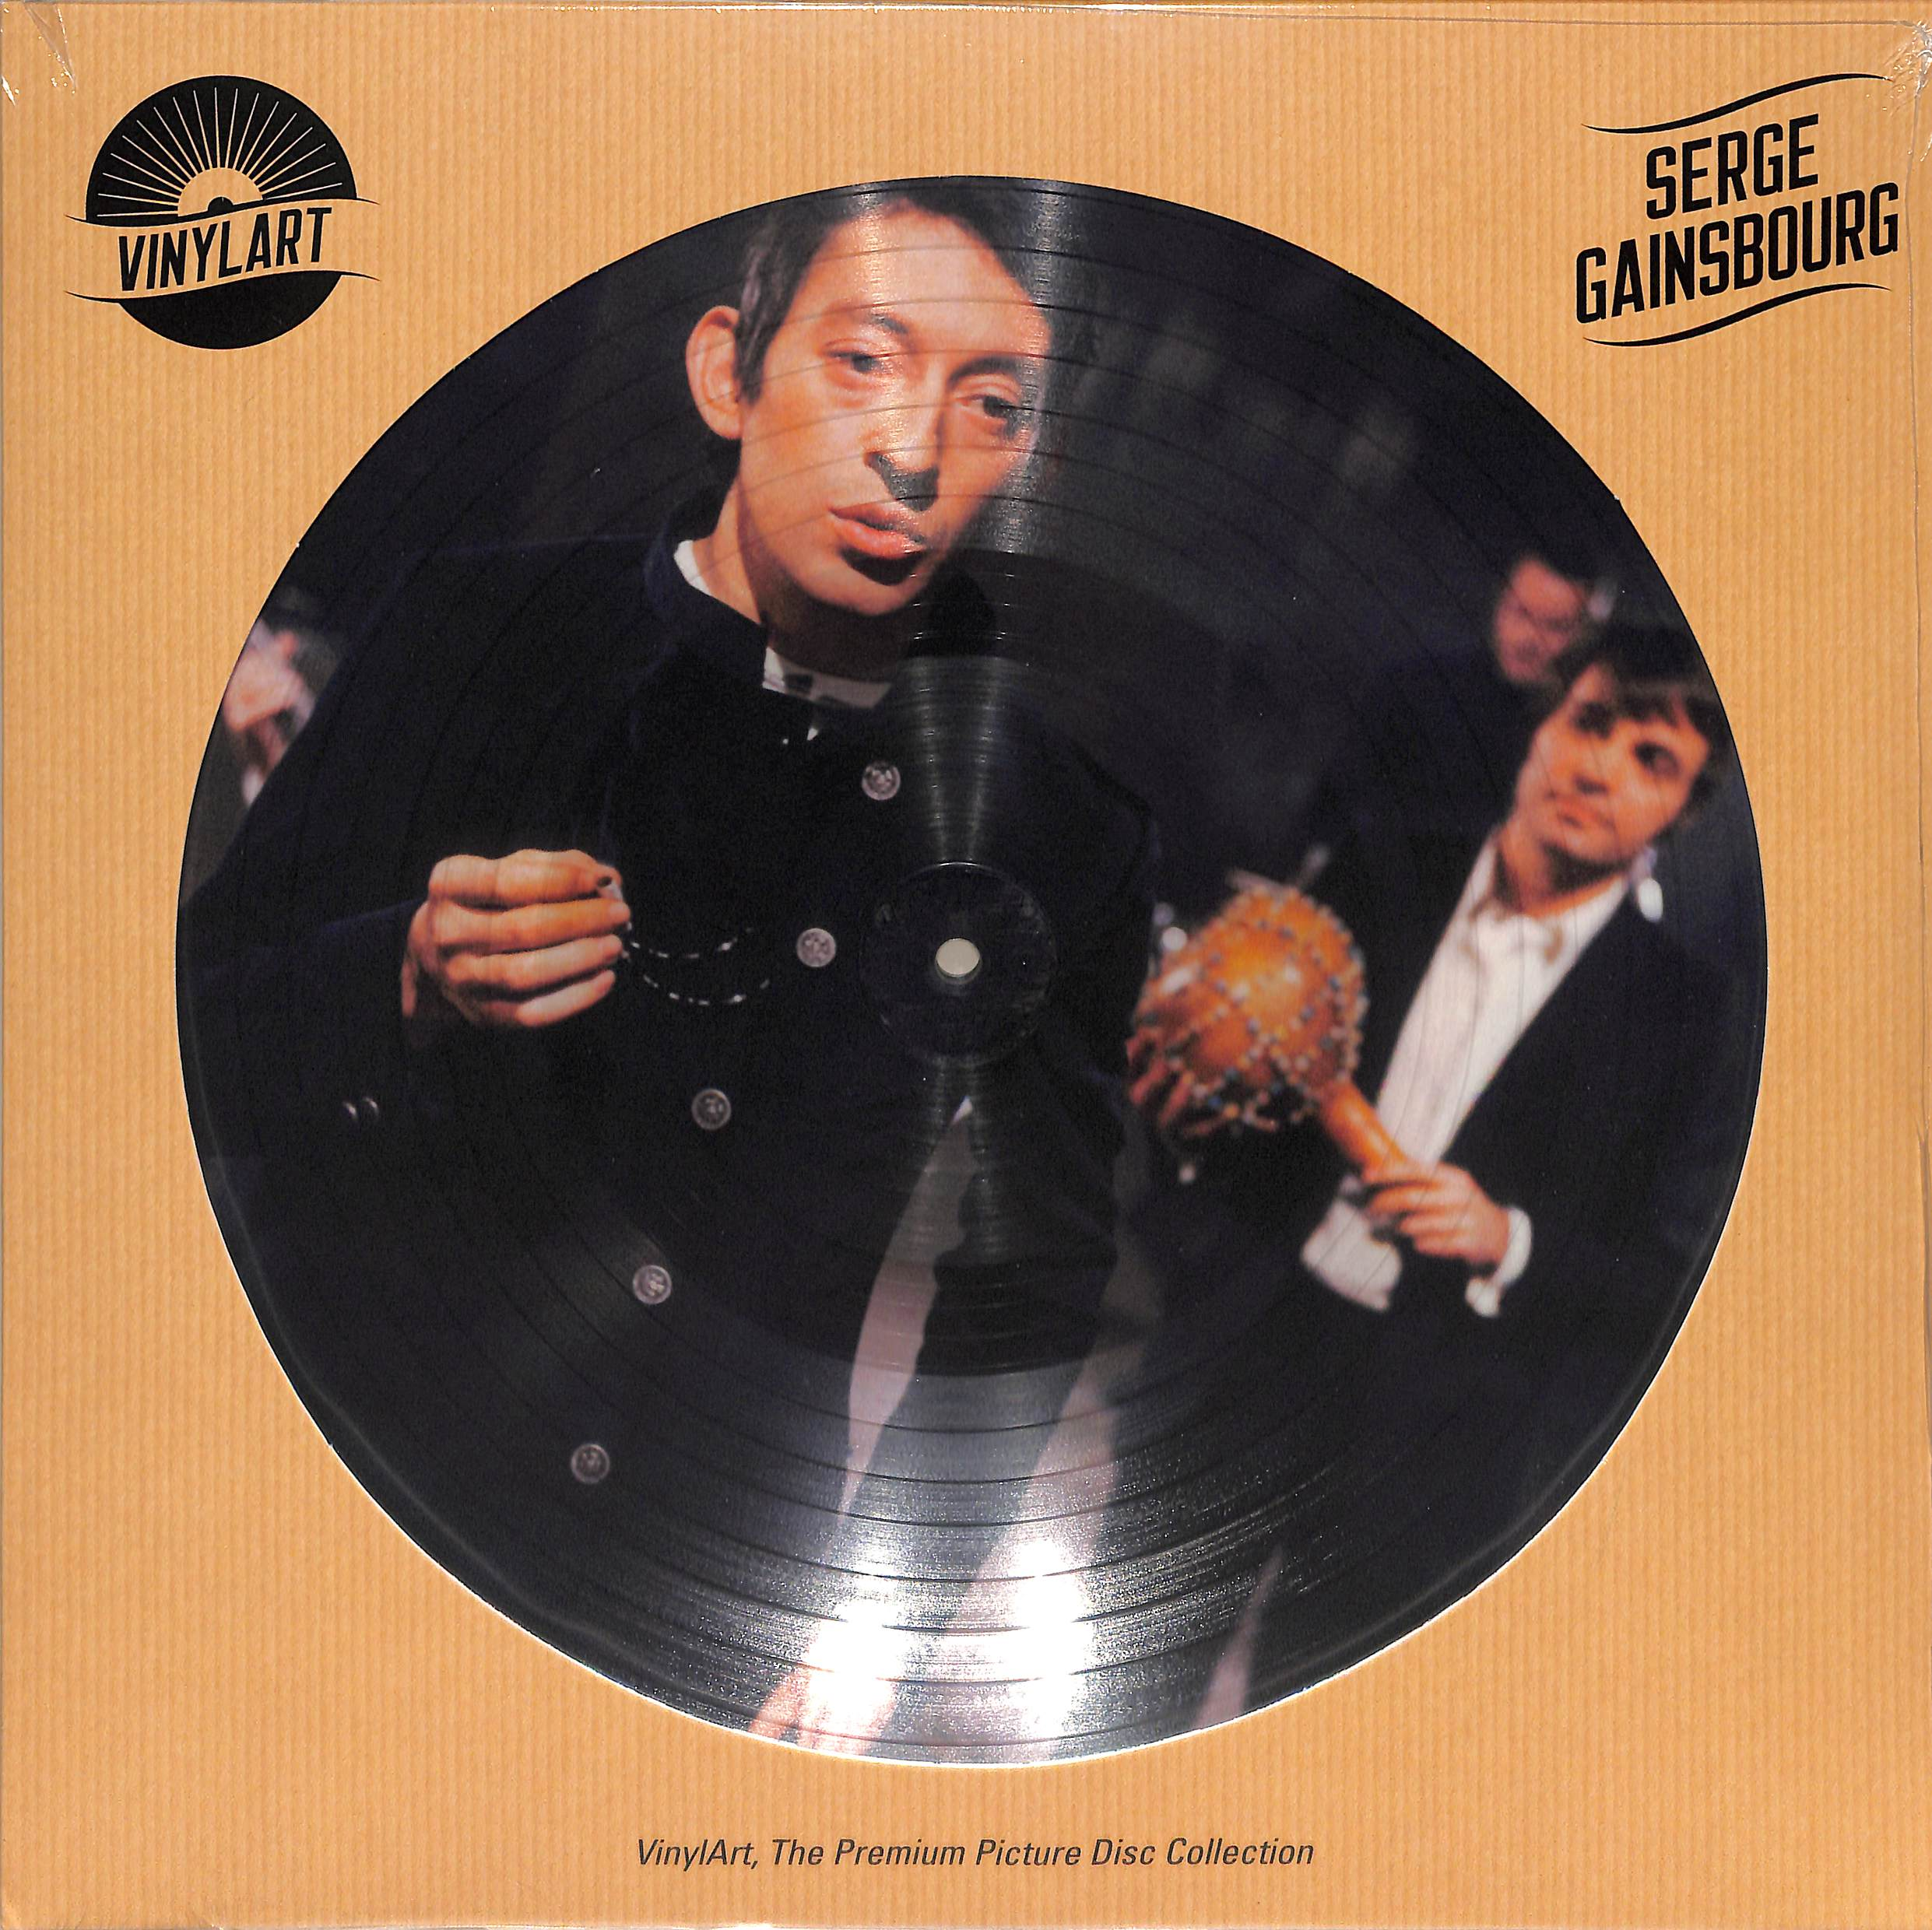 Serge Gainsbourg - VINYLART - THE PREMIUM PICTURE DISC COLLECTION